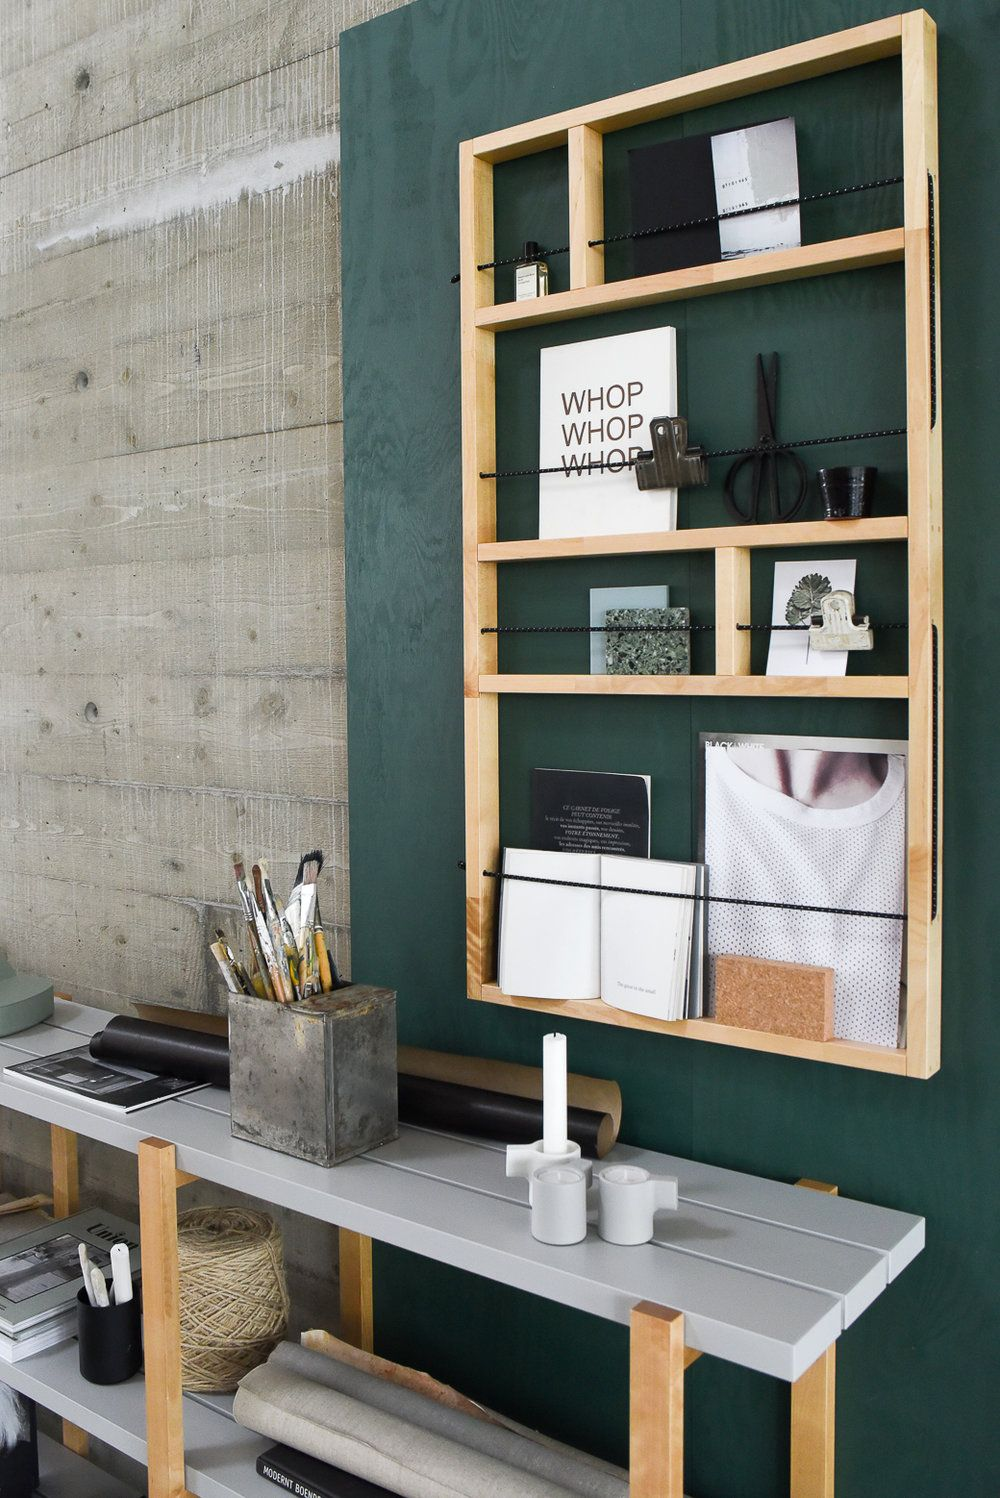 would be so easy to build this shelf rack great option to add some depth to design in small spaces